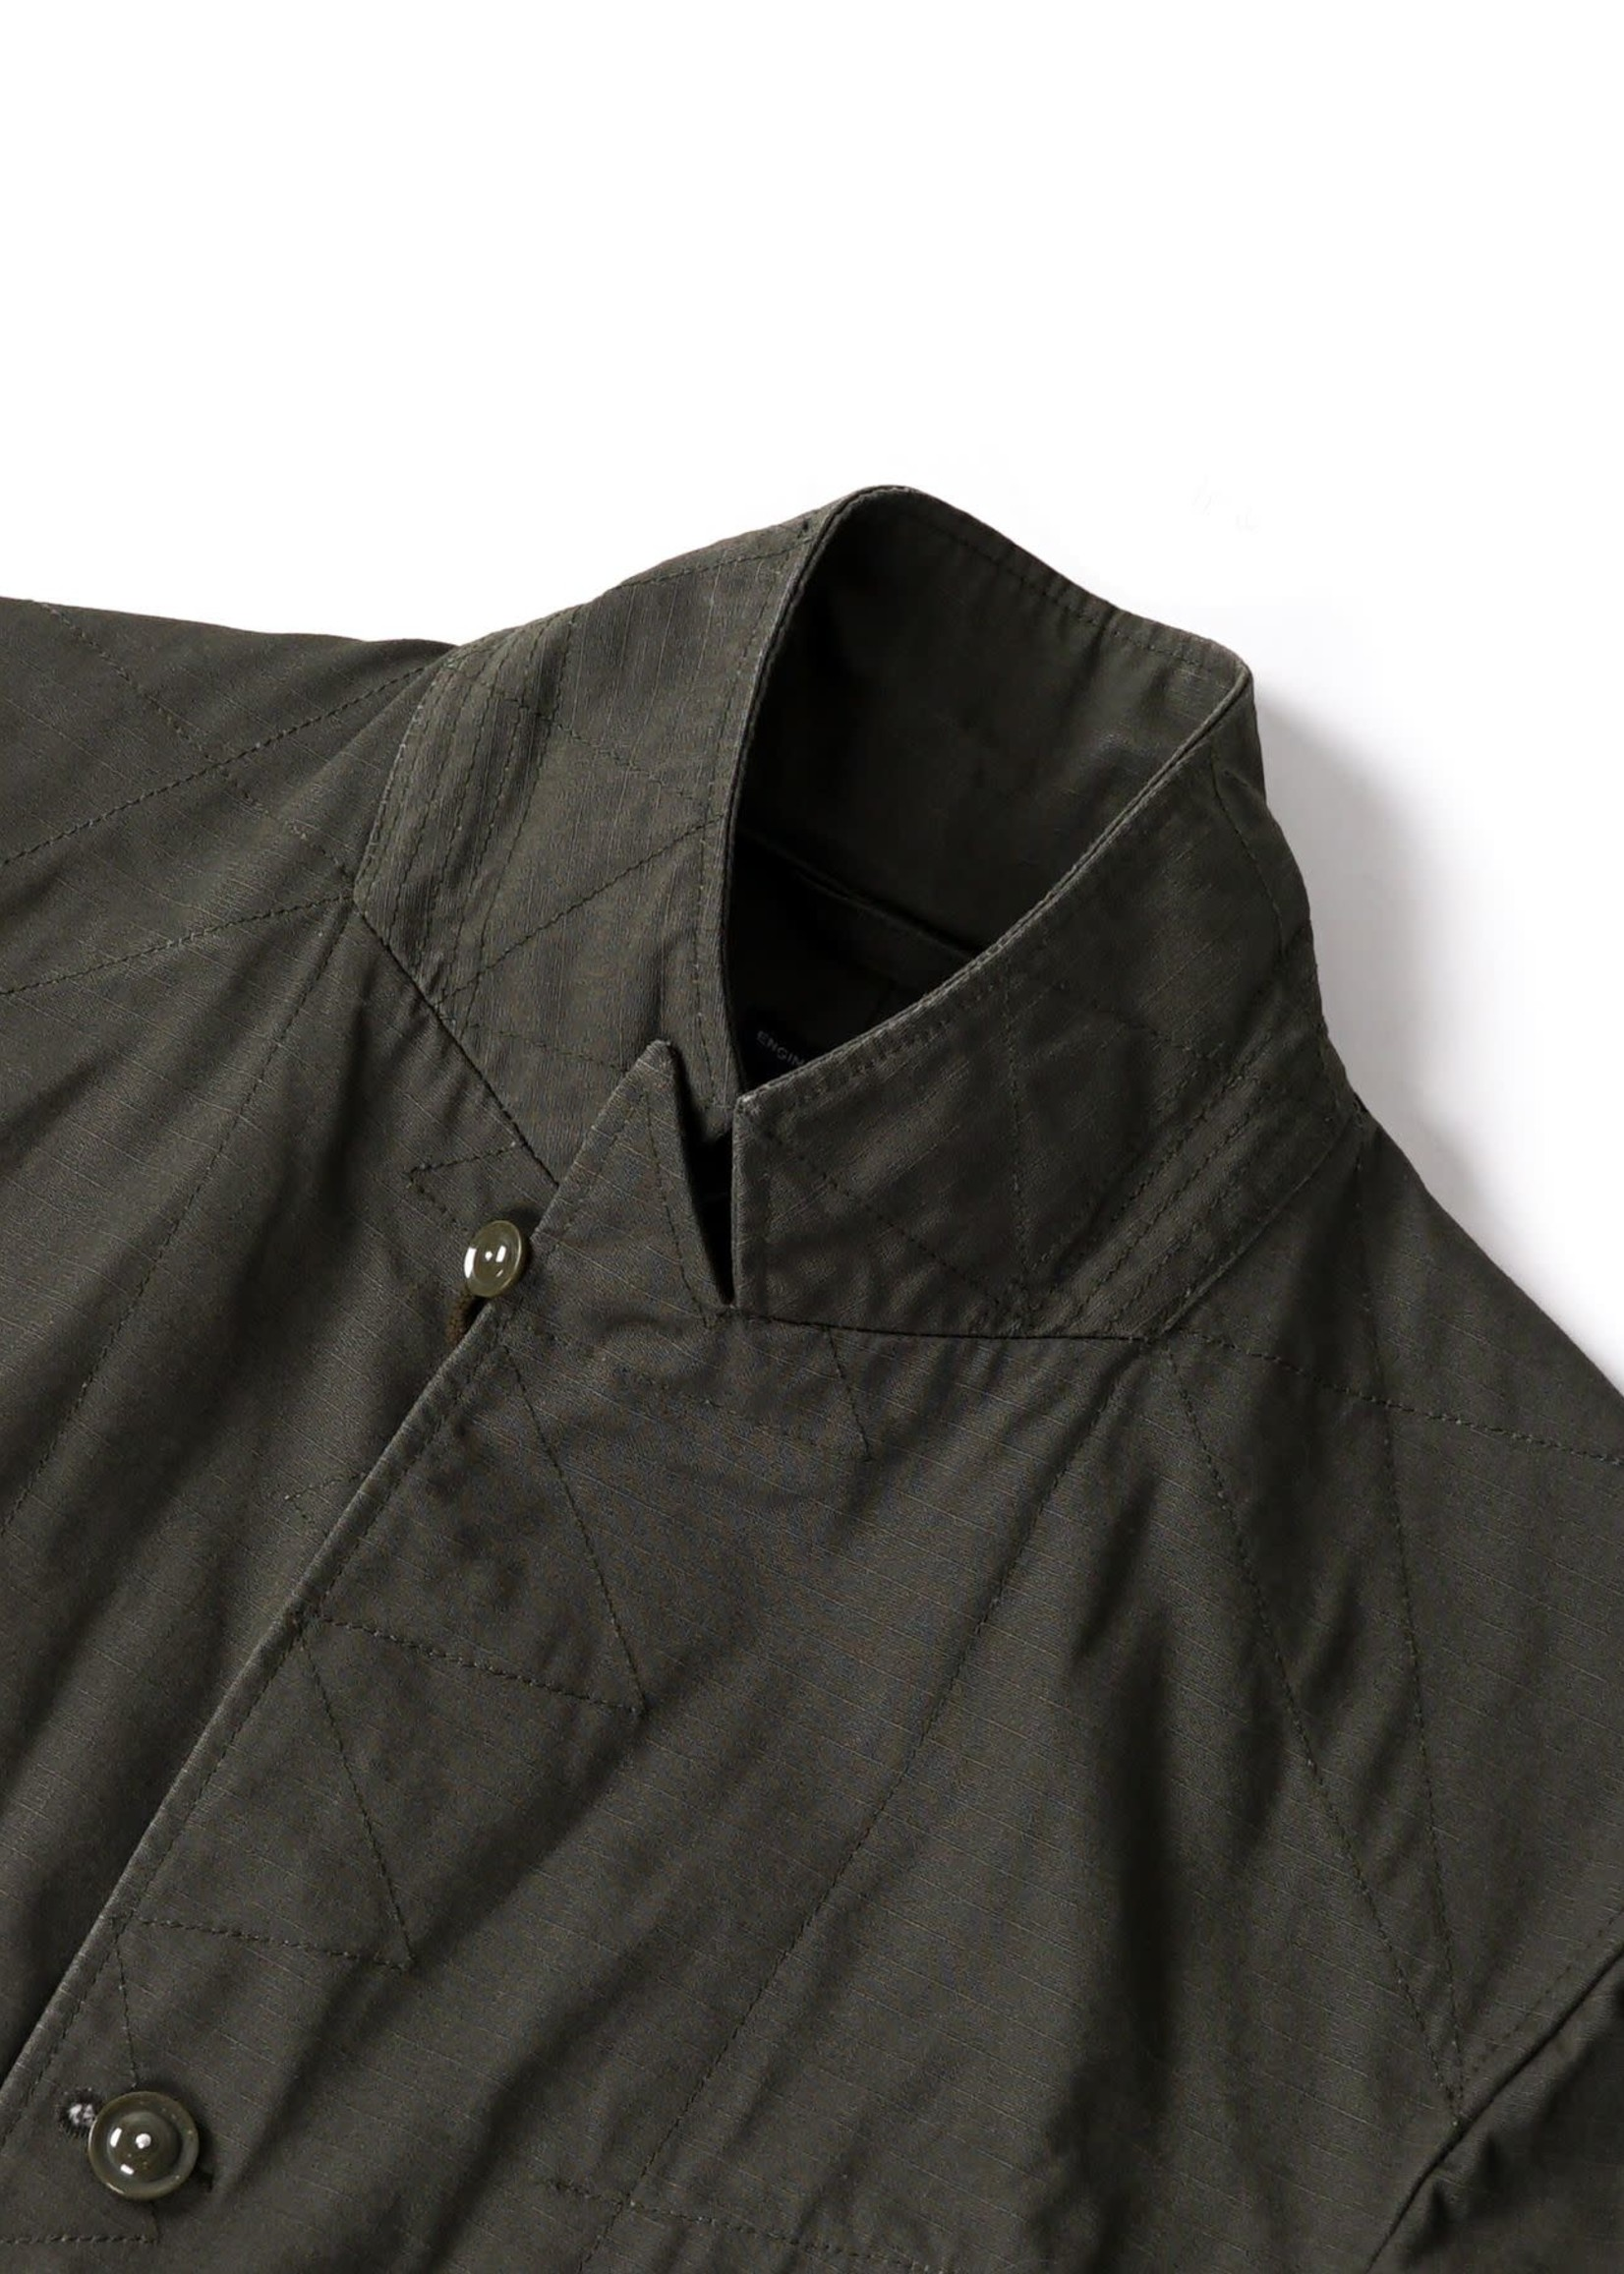 Engineered Garments Engineered Garments Bedford Jacket Olive Heavy Weight Cotton Ripstop